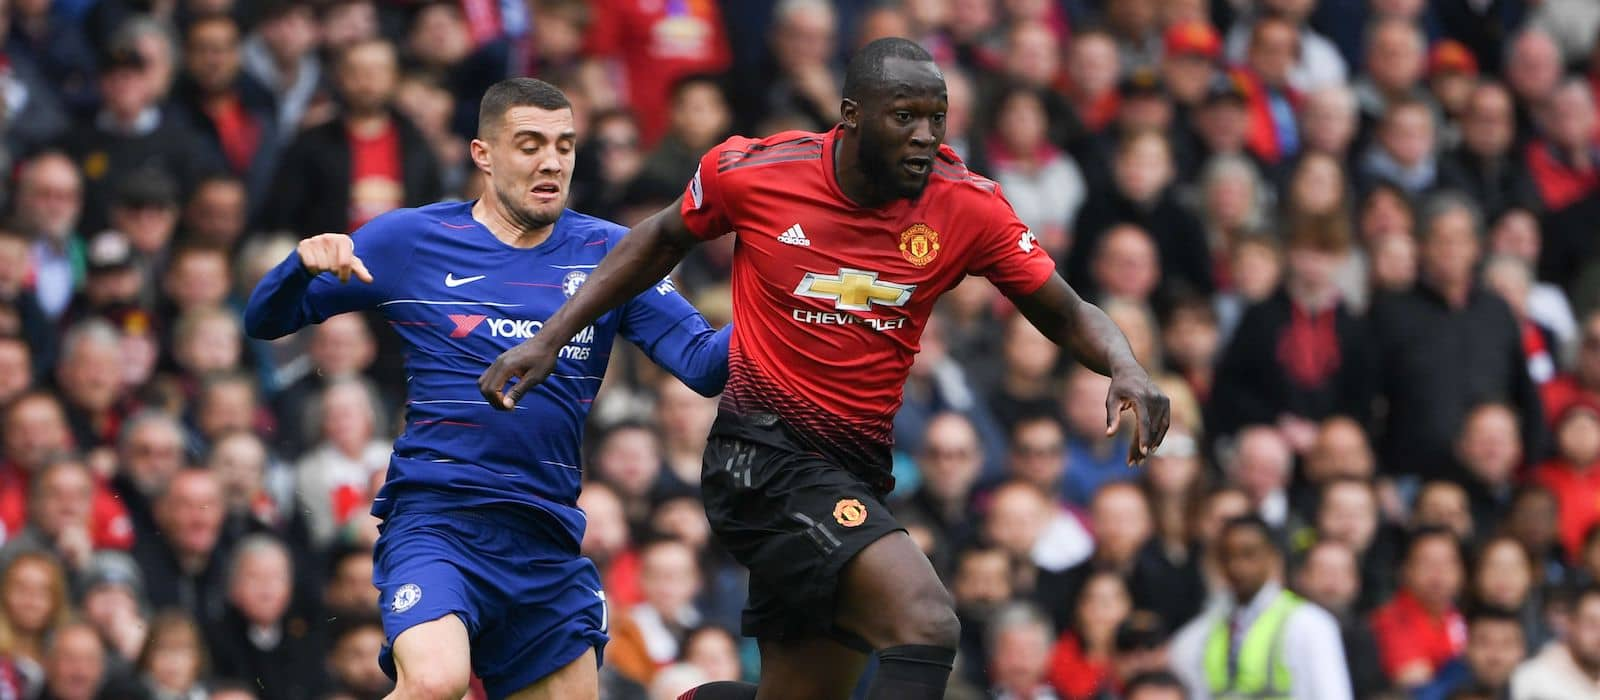 Fabrizio Romano: Inter Milan make initial €70m offer for Romelu Lukaku